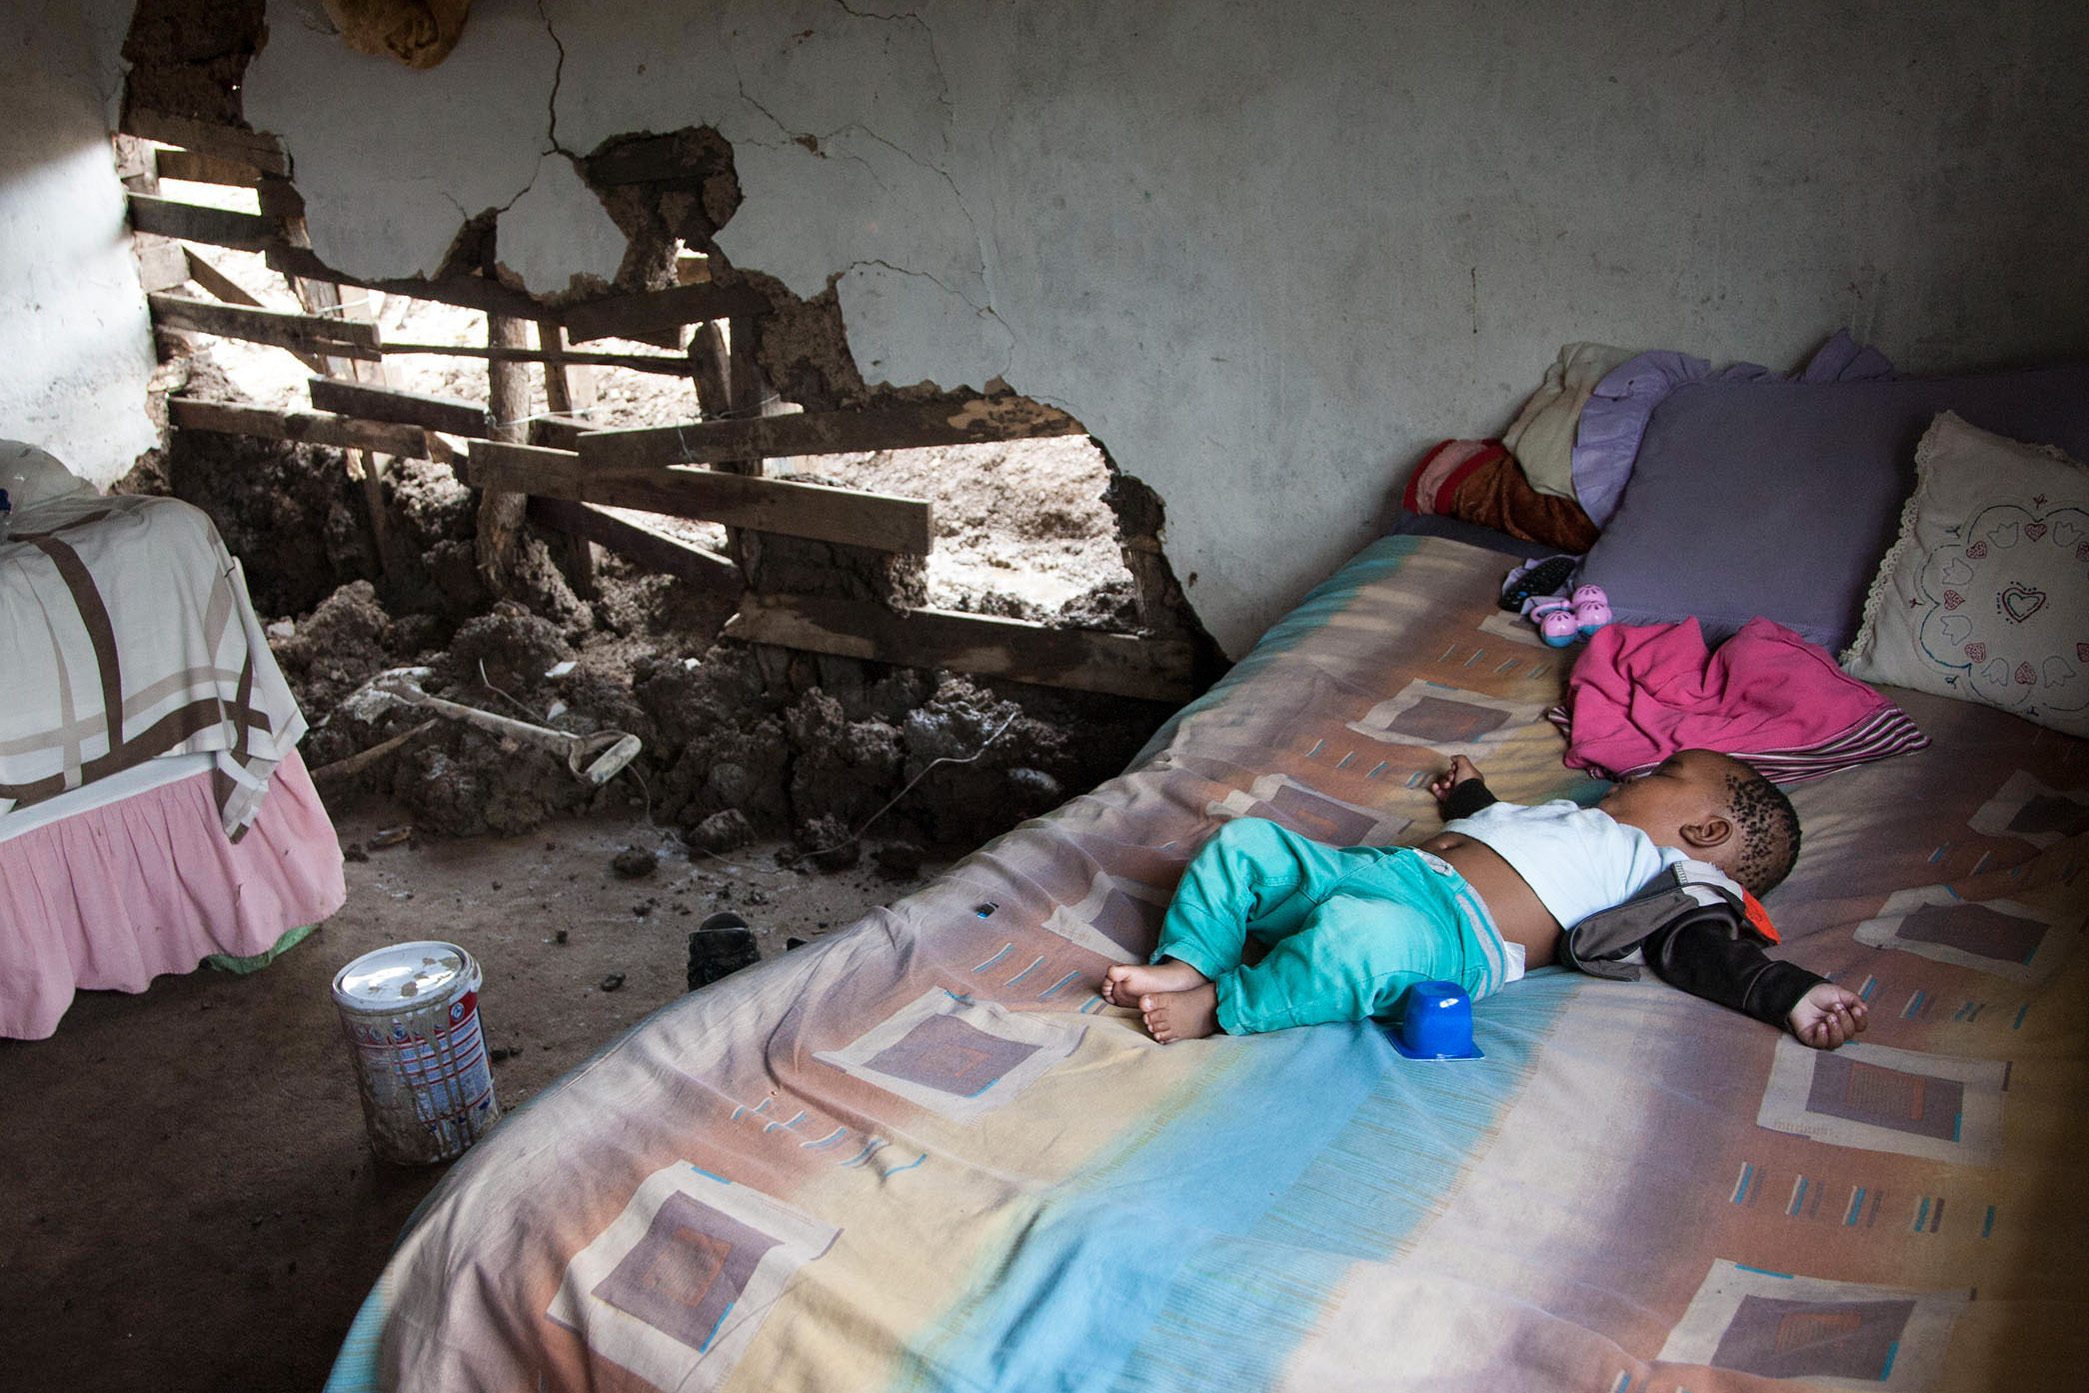 16 November 2019: Athenkosi Maphenduka sleeps in the room he shares with his grandmother at their home in Tommy Property shack settlement in Mhlasini, KwaZulu-Natal. Heavy rain washed away the lower wall of their mud house.